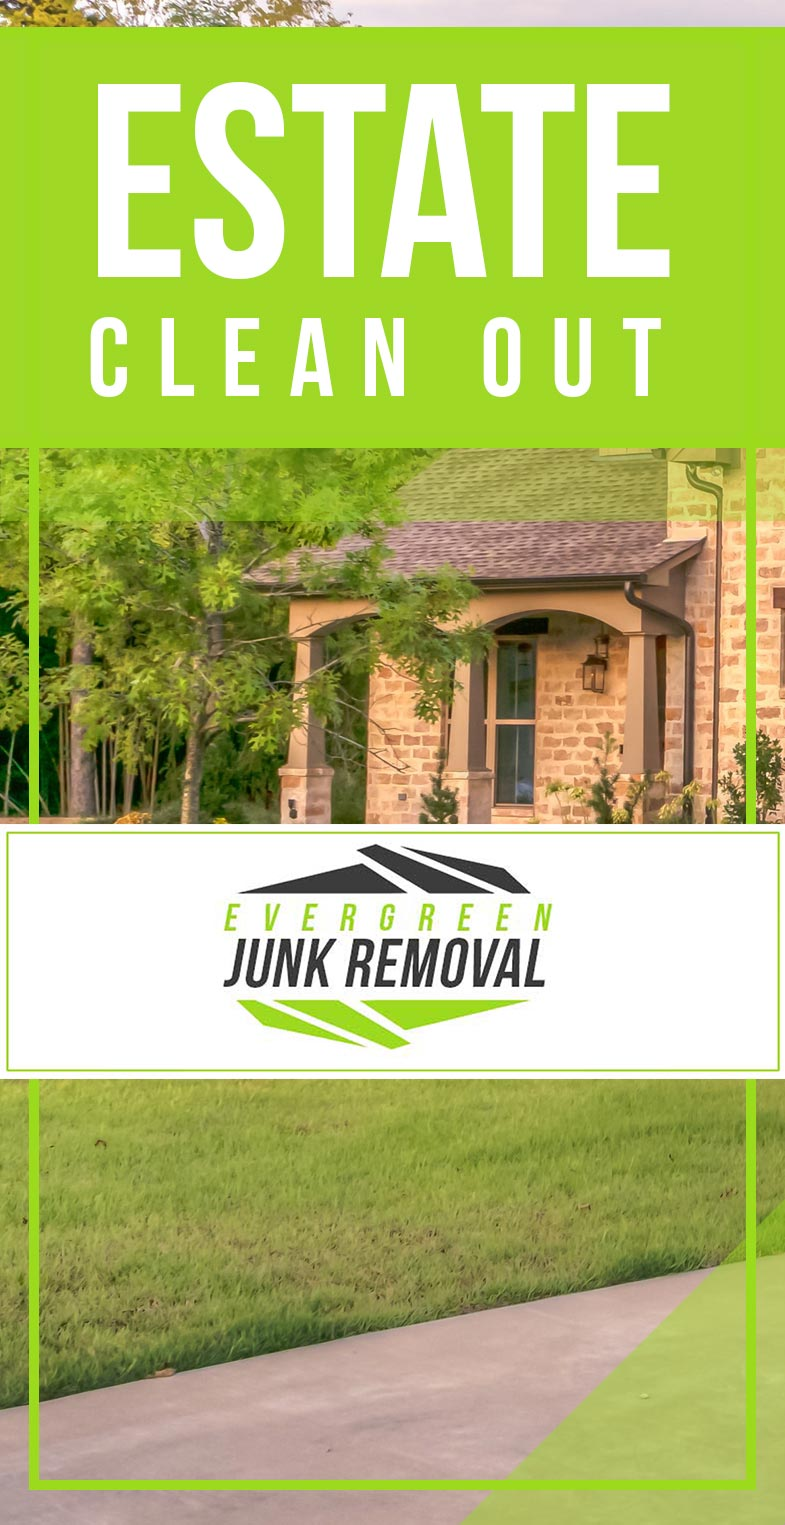 Junk Removal Hillsboro Pines FL Estate Clean Out